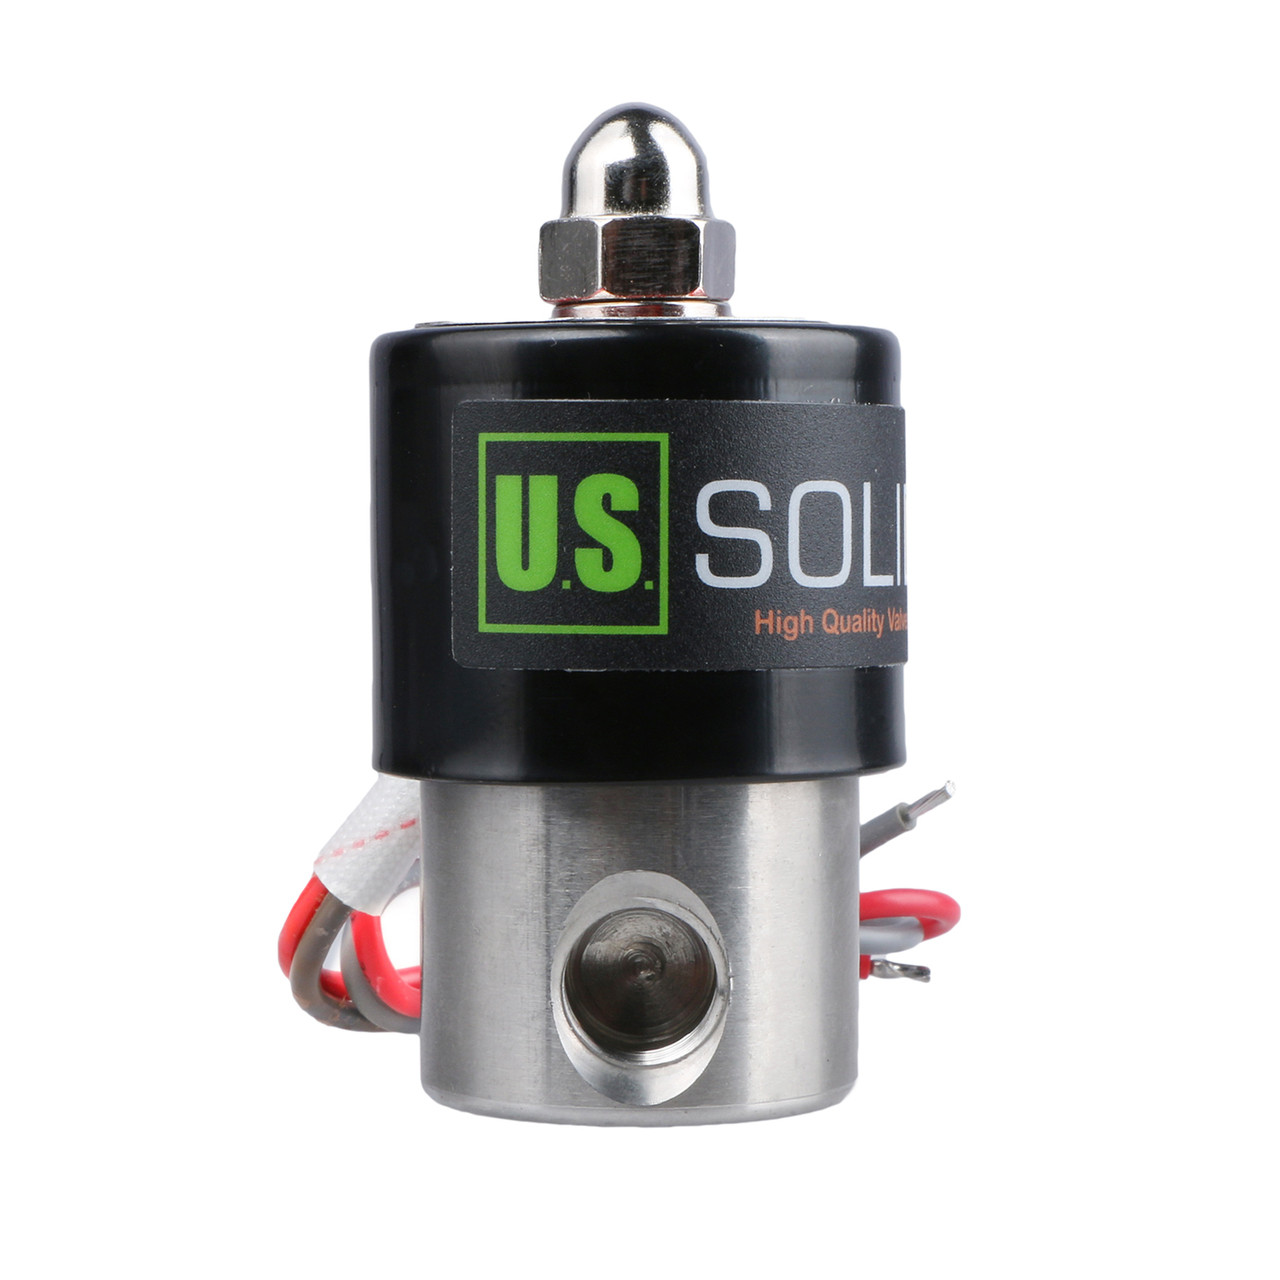 """U.S. Solid Electric Solenoid Valve- 1/4"""" 24V AC Solenoid Valve Stainless Steel Body Normally Closed, VITON SEAL"""